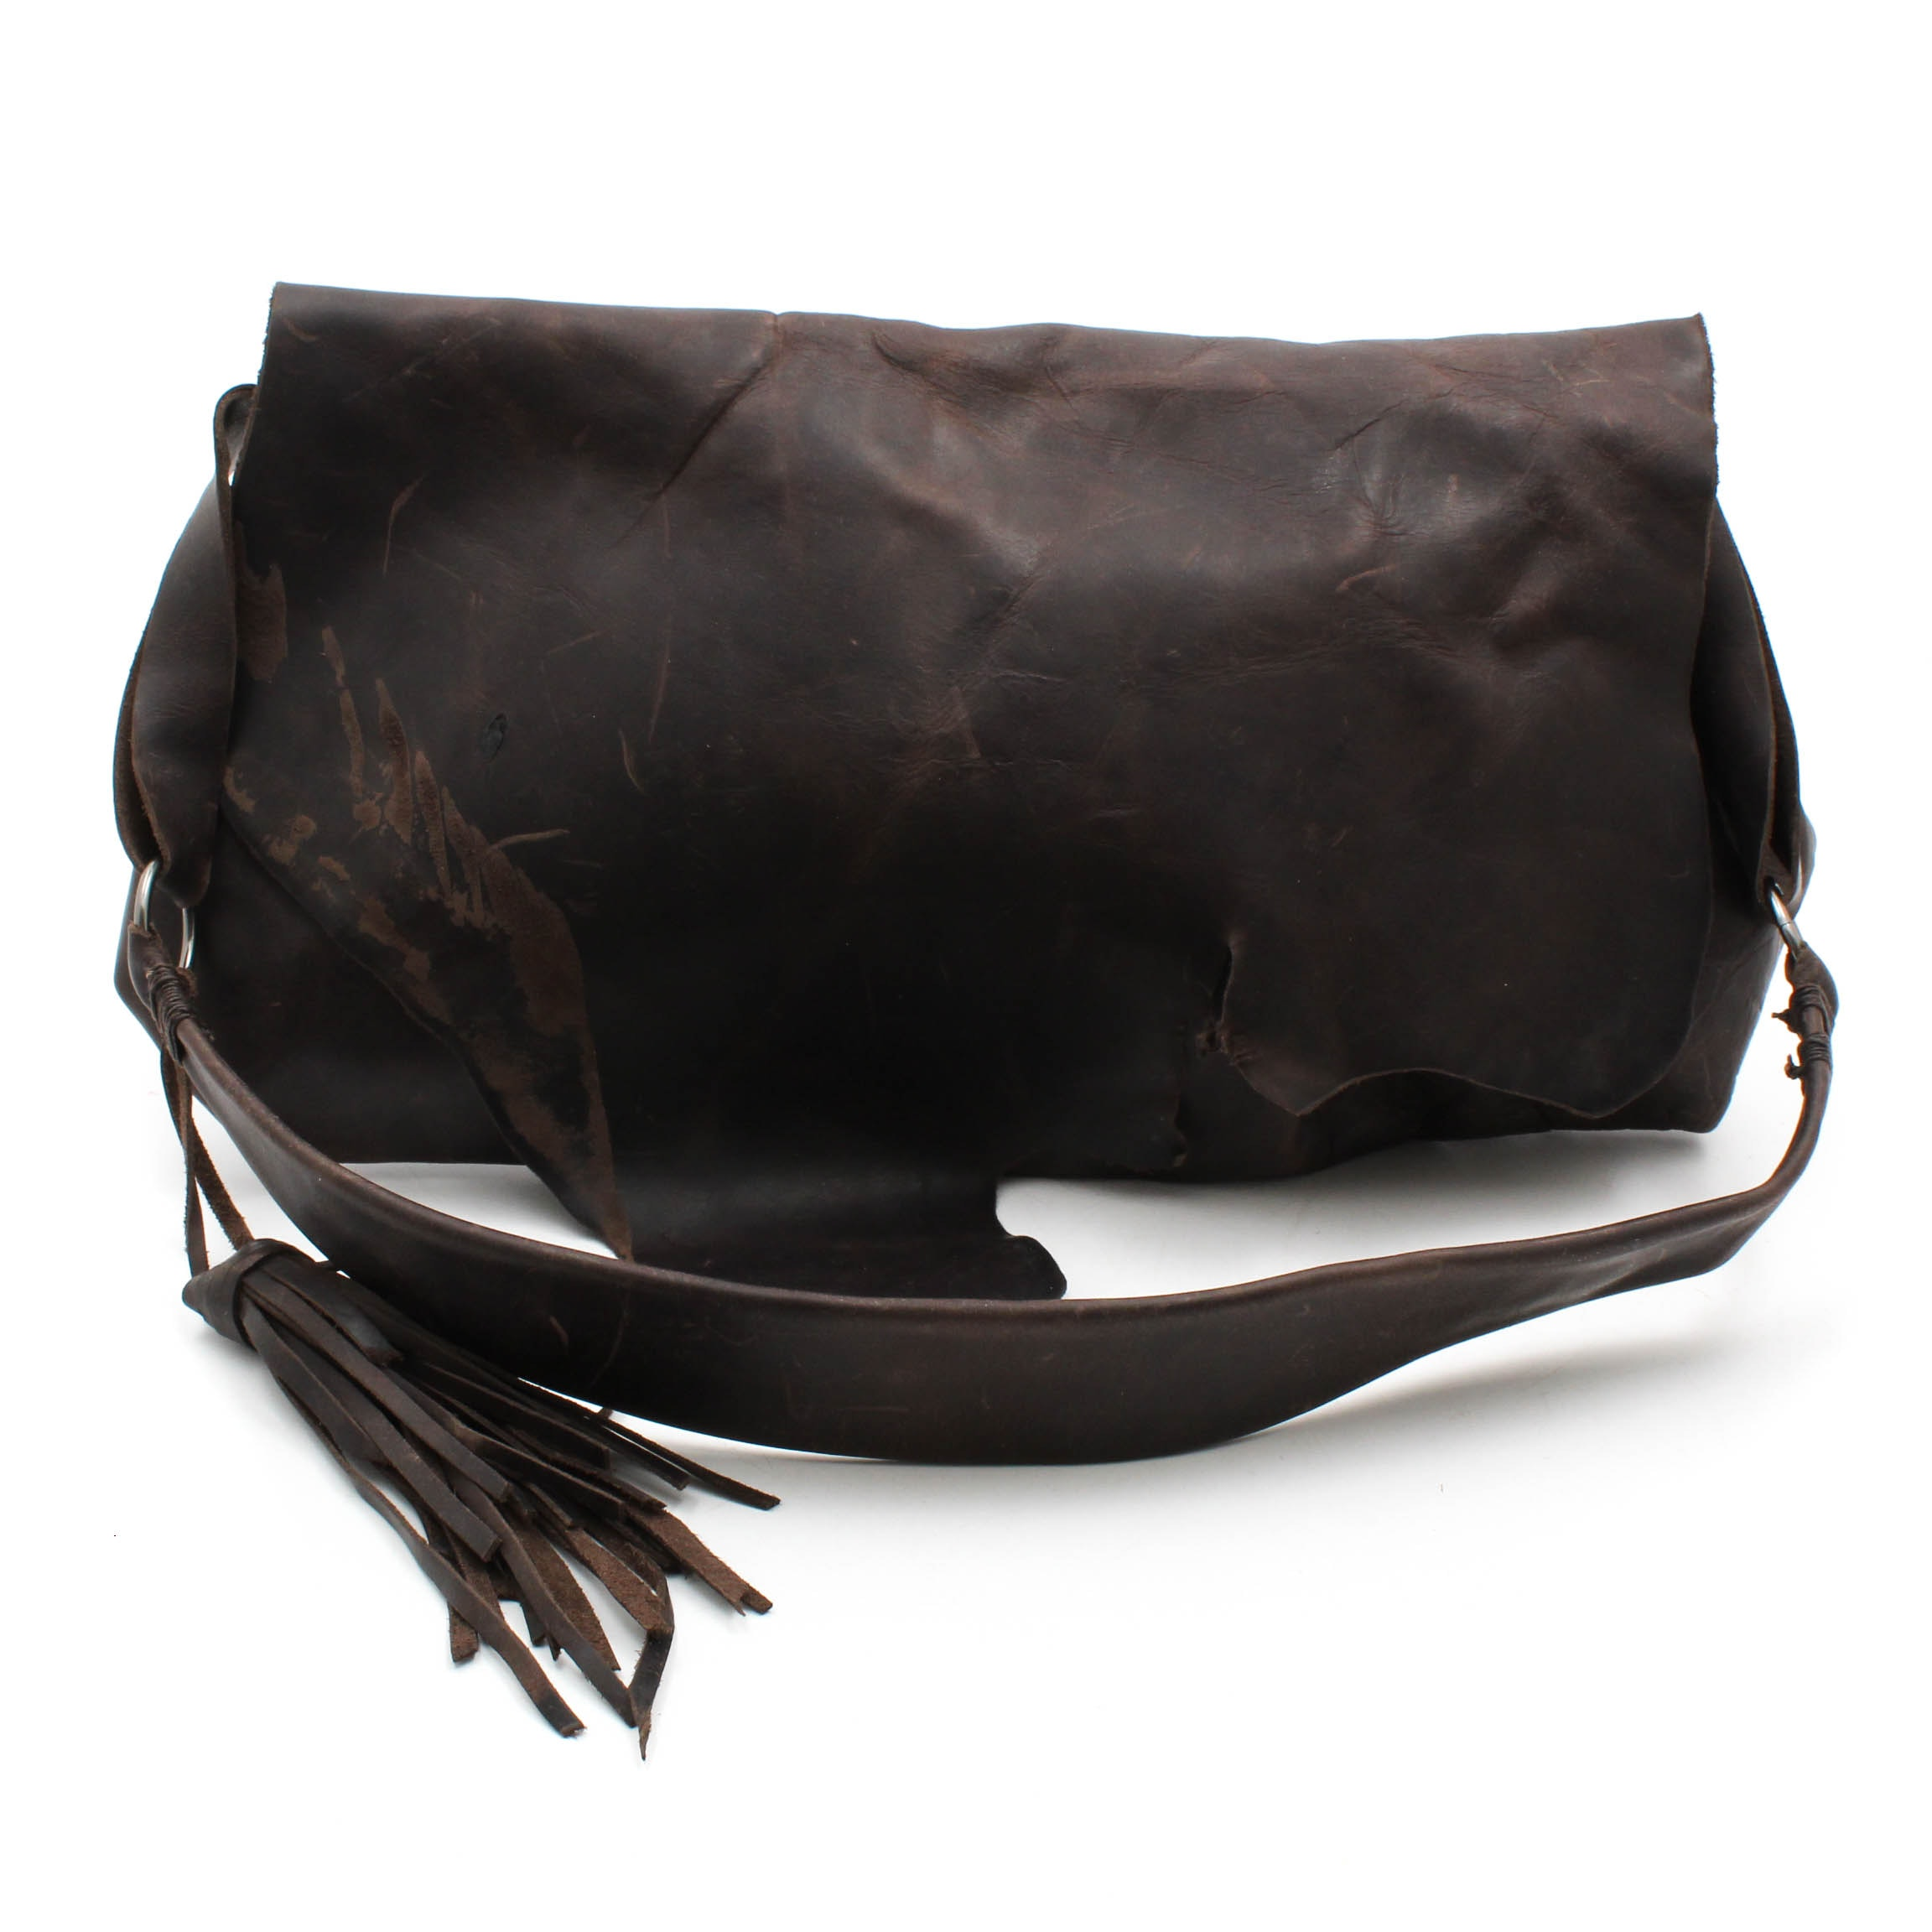 Dark Brown Leather Satchel from Leather Feather Stone